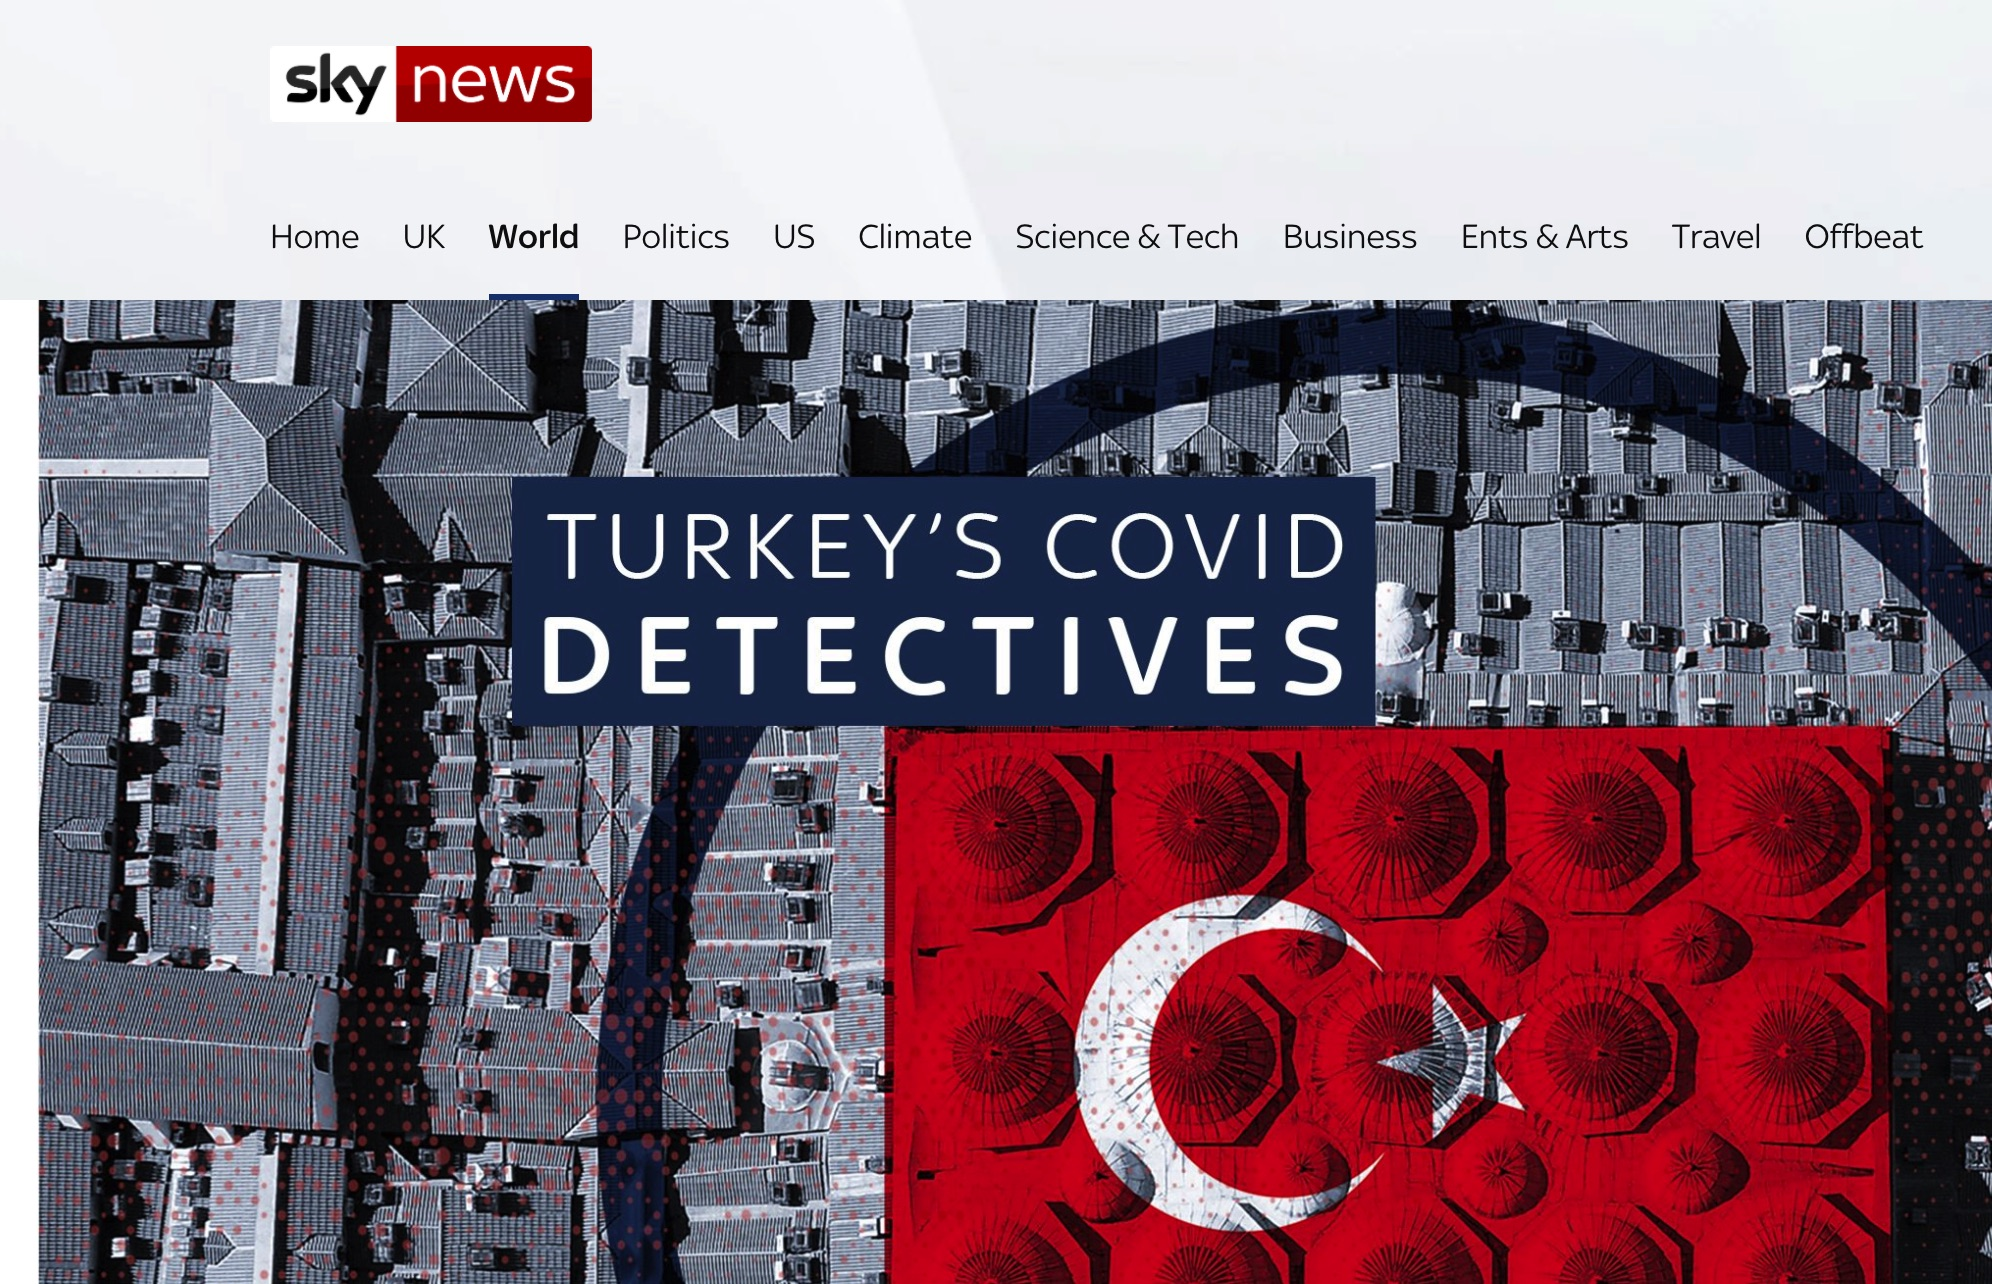 Turkey's COVID-19 Early Hydroxychloroquine Treatment Strategy Featured by Sky News